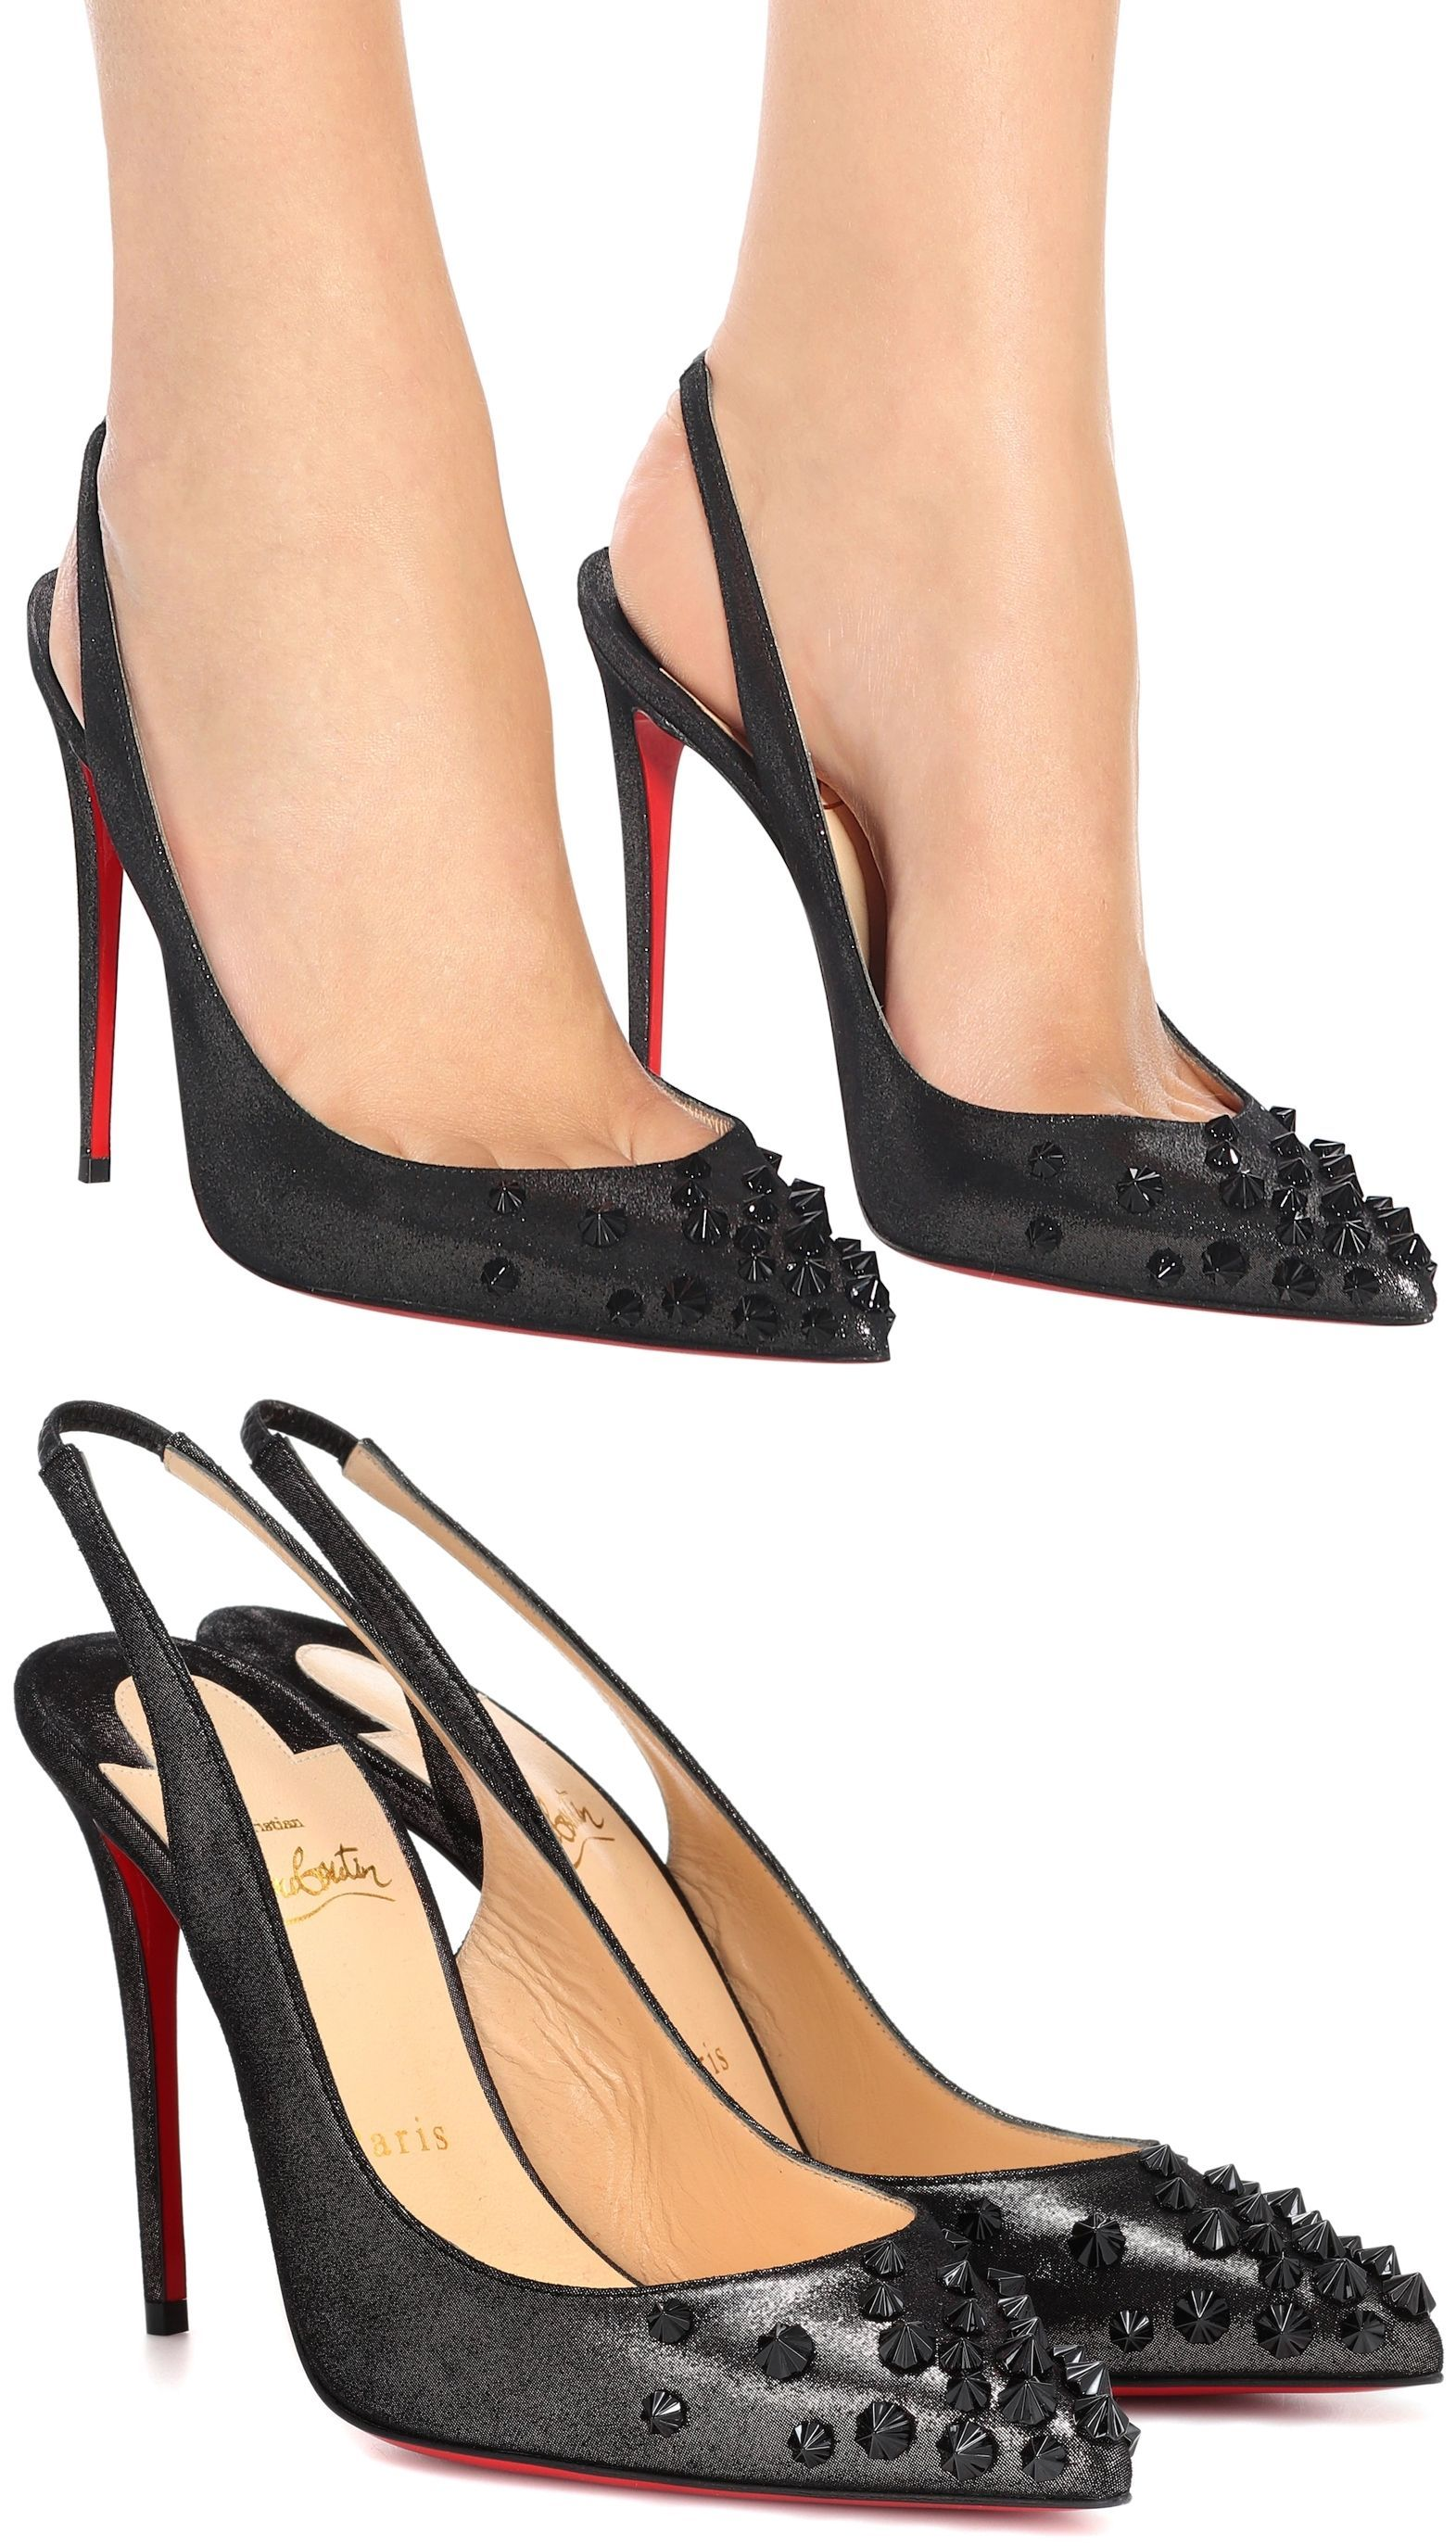 4015c2fc25 This update to the Drama Sling pumps from Christian Louboutin is not for  the faint of heart. It features a black metallic suede lamé upper, a  dramatic 100mm ...